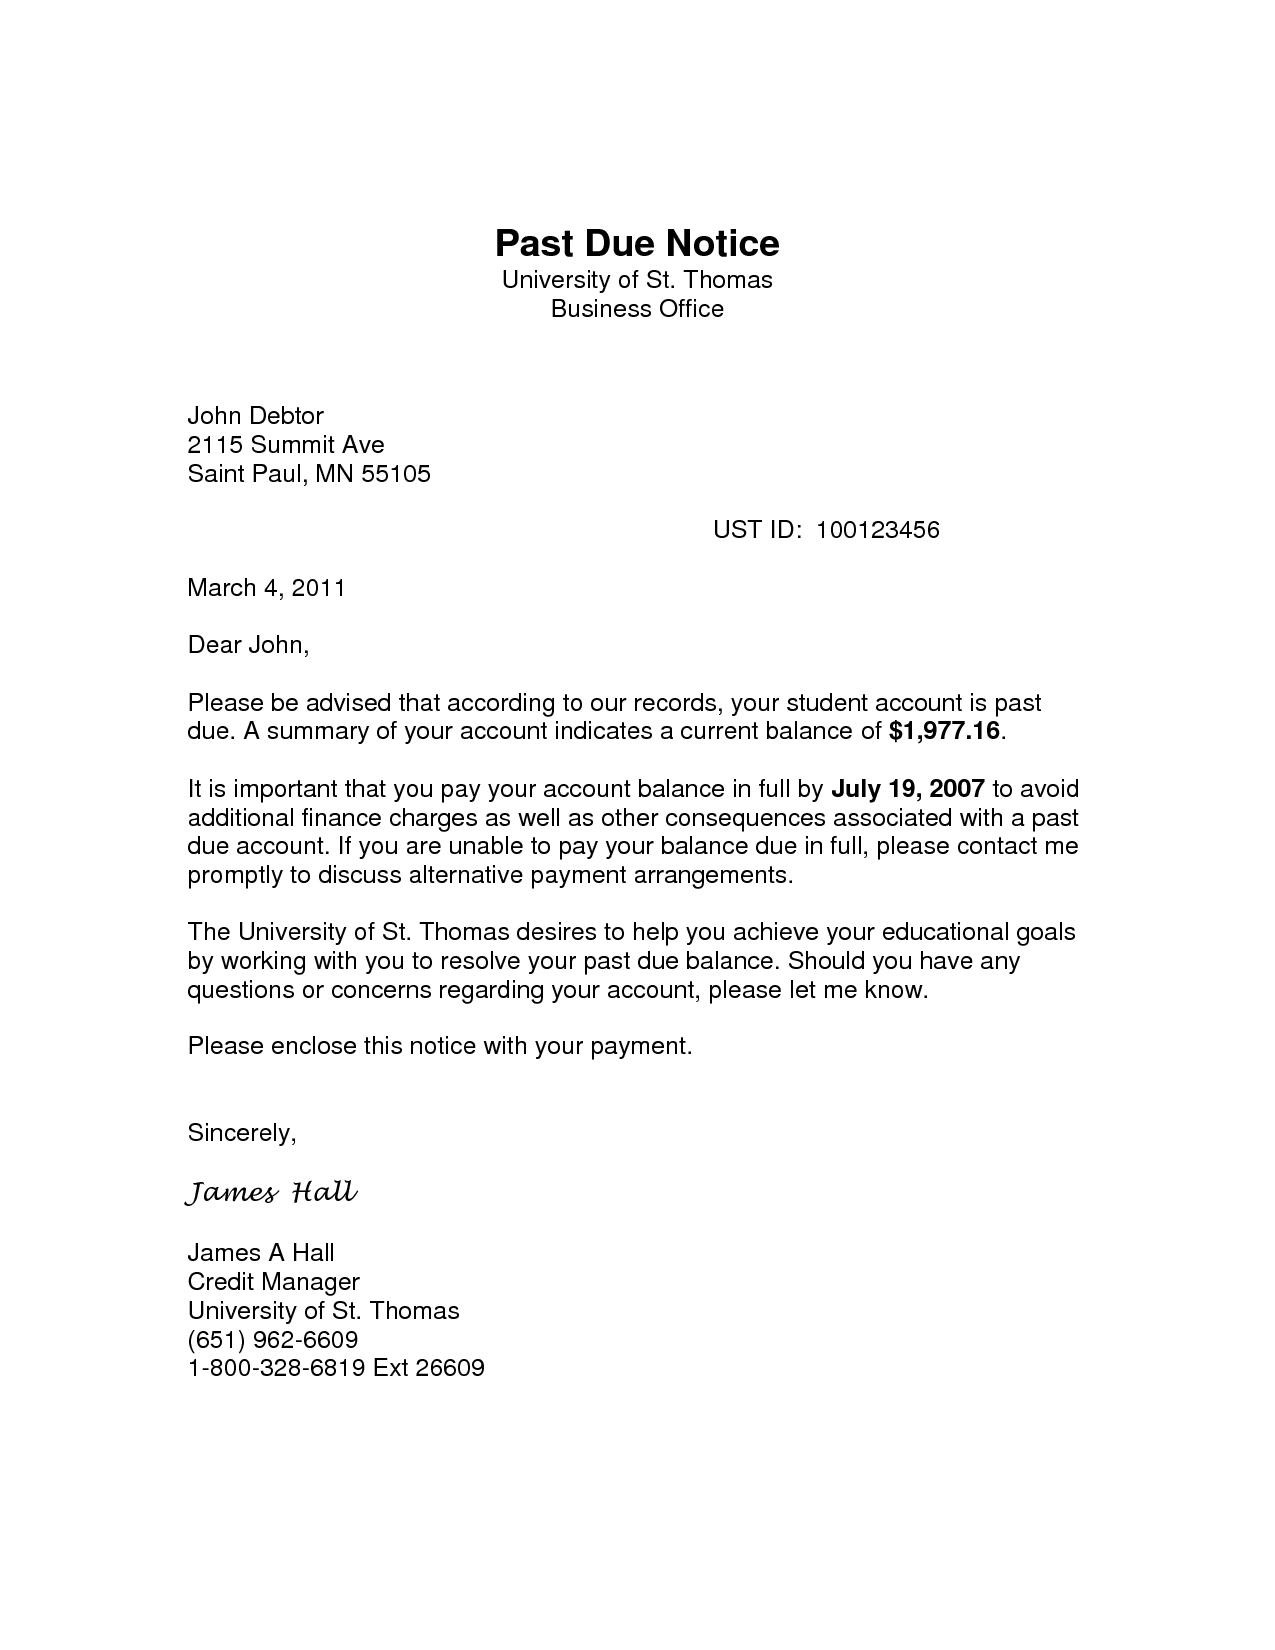 Past Due Collection Letter Template - Past Due Notice Acurnamedia